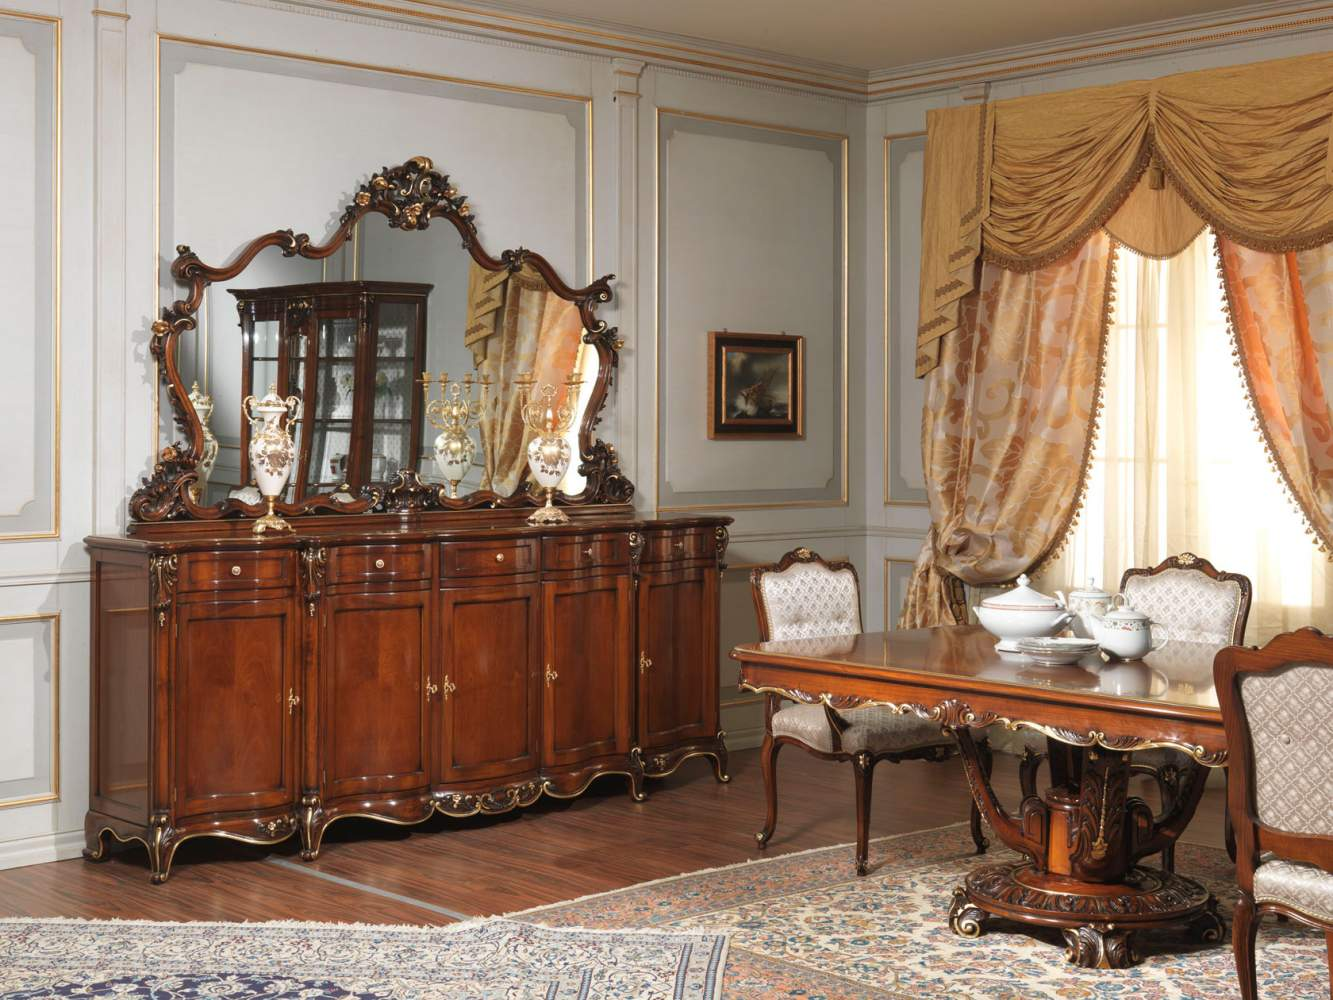 Sideboard and table Paris in Louis XV style